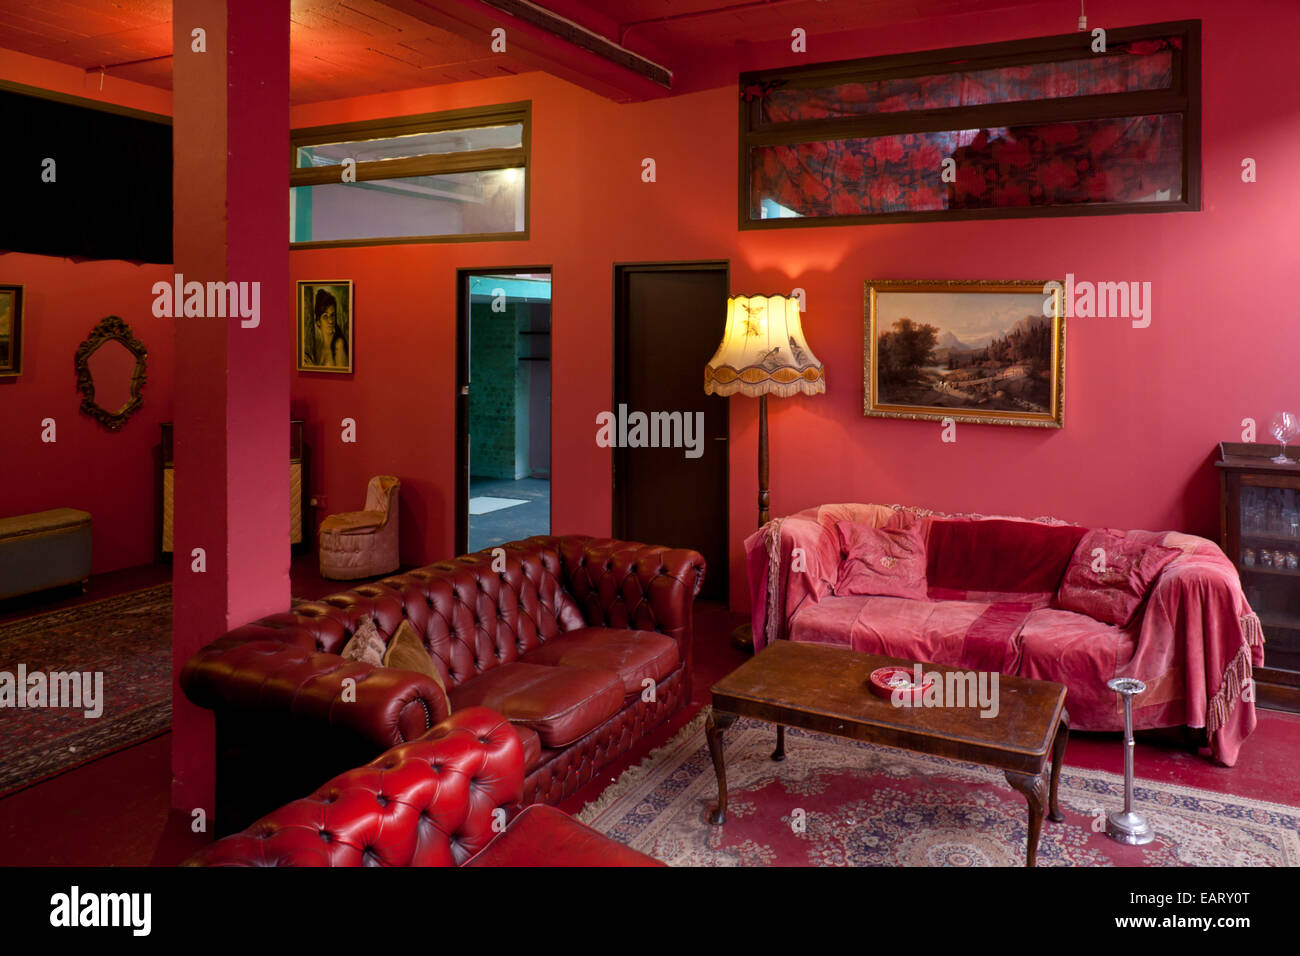 https://c8.alamy.com/comp/EARY0T/living-room-dalston-eclectic-taxidermy-warehouse-and-locations-studio-EARY0T.jpg